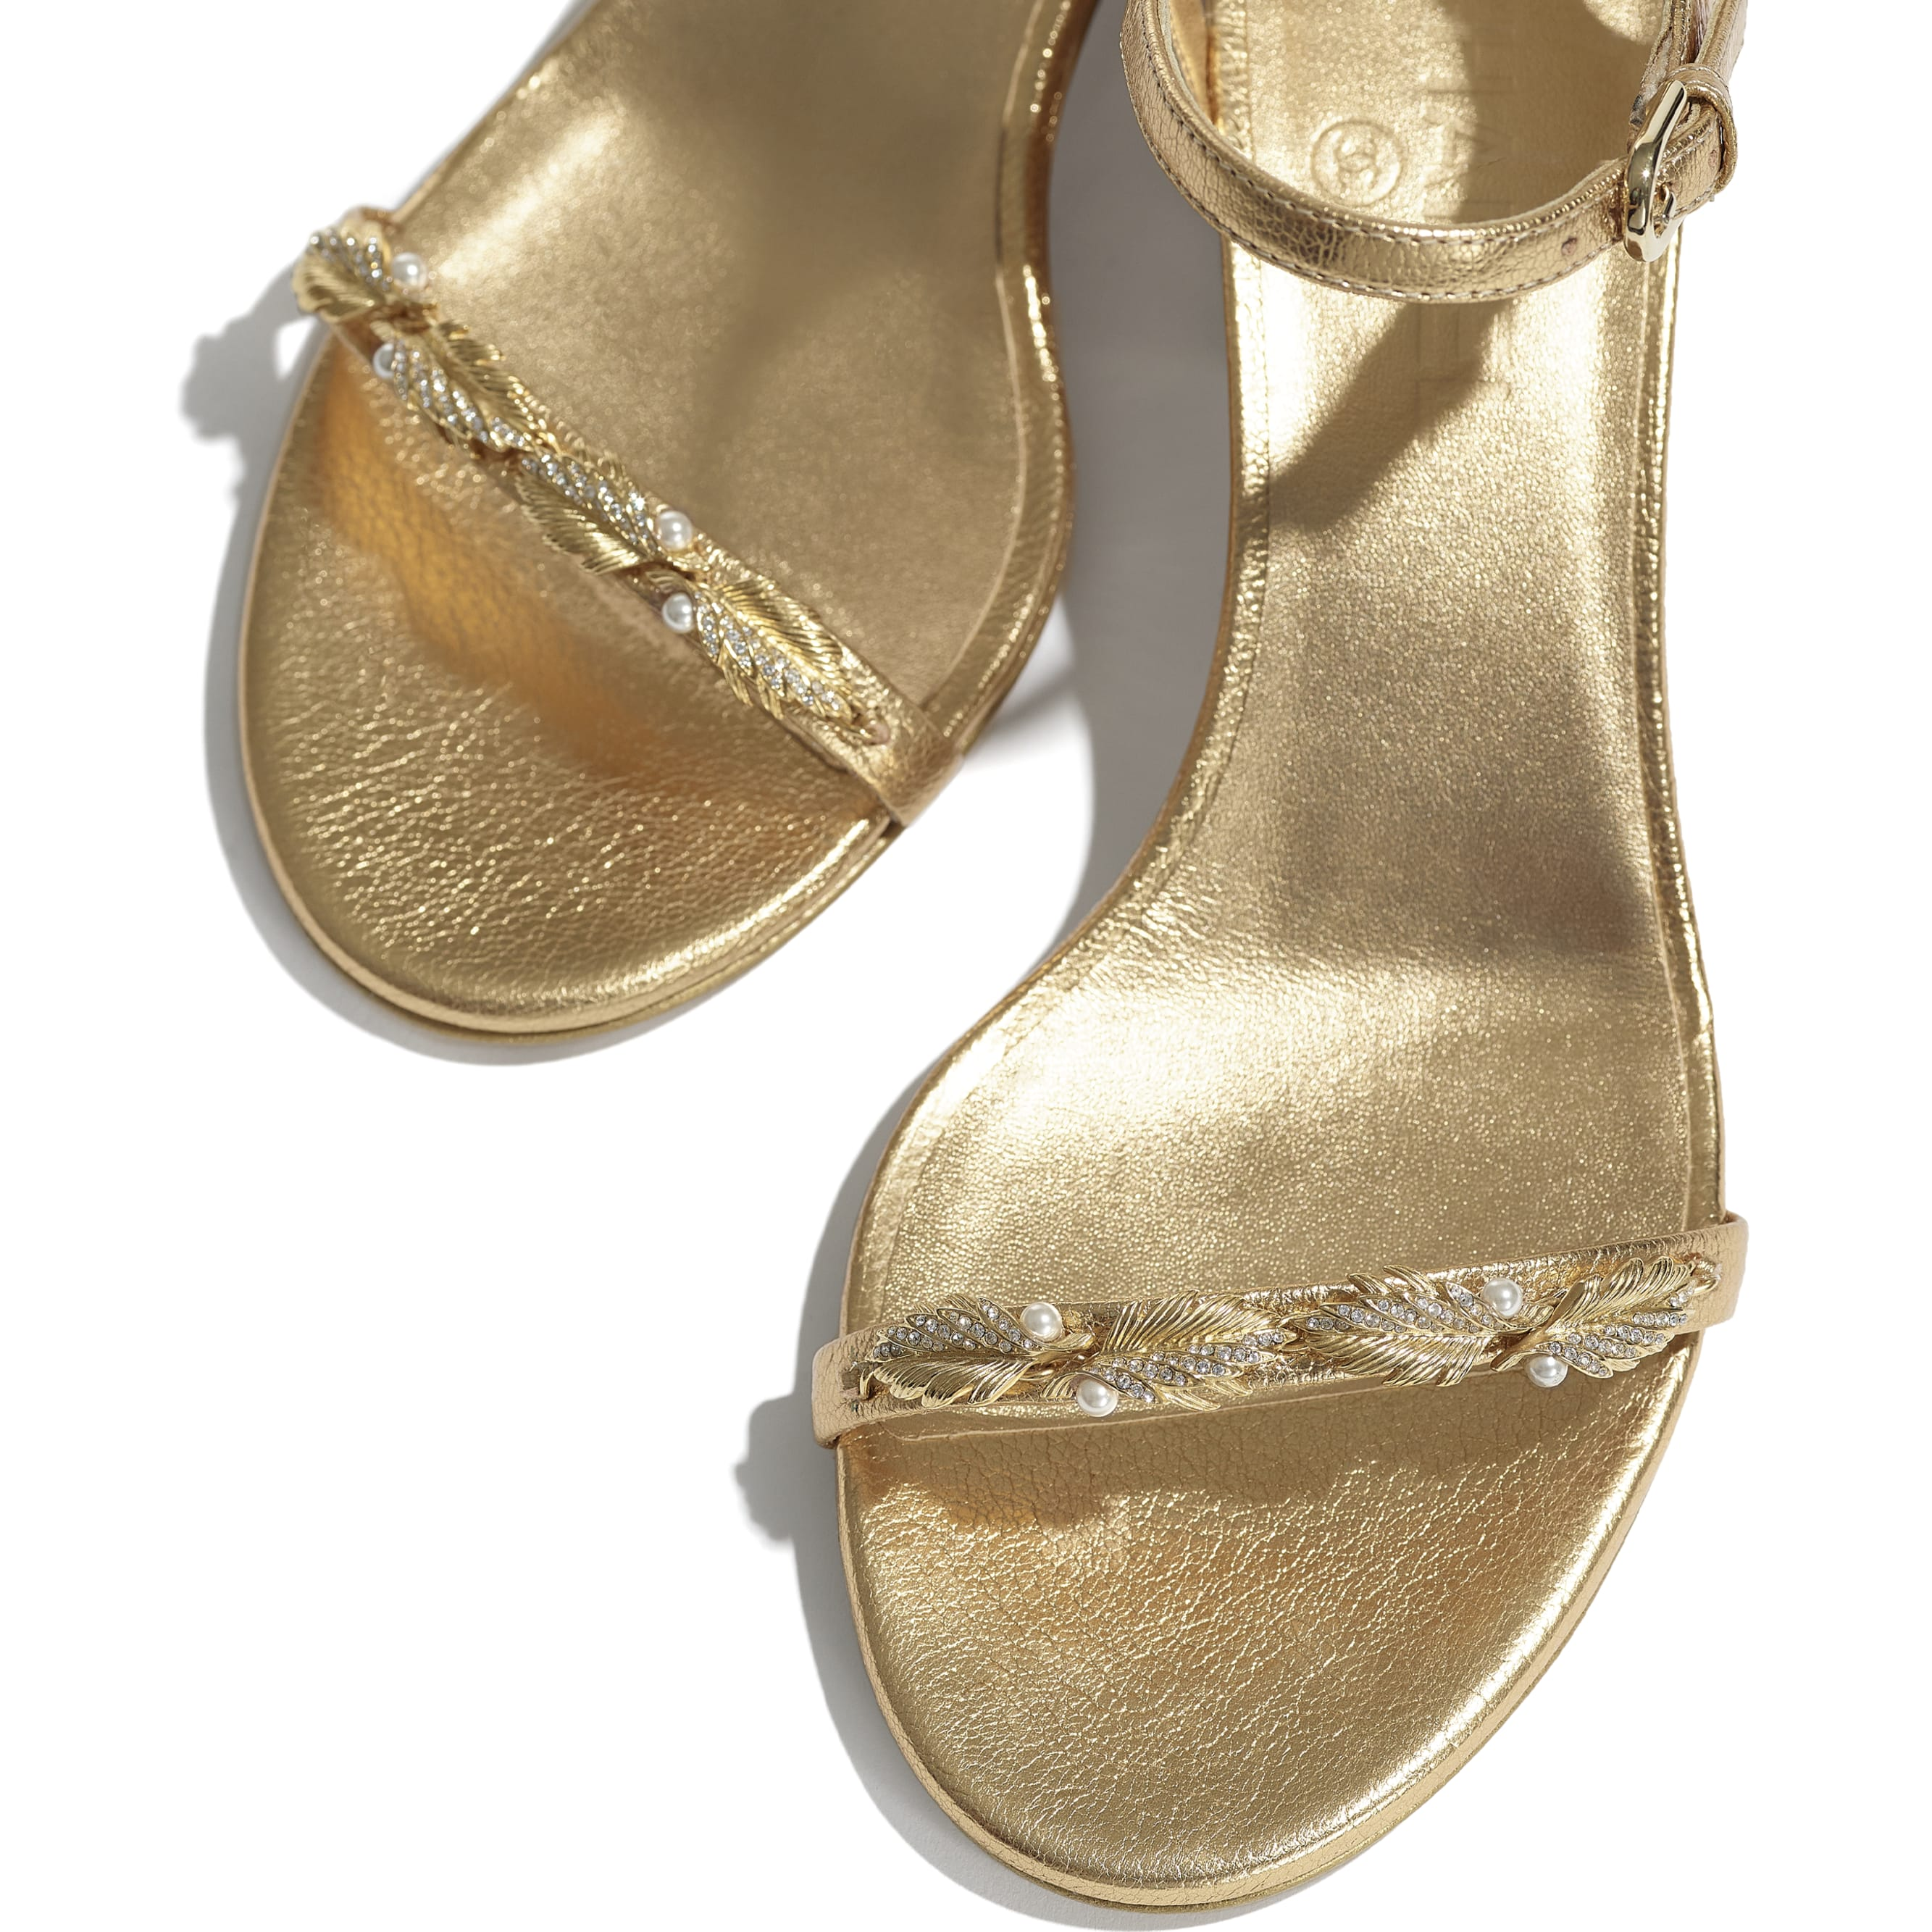 Sandals - Gold - Laminated Goatskin & Jewelry  - CHANEL - Extra view - see standard sized version